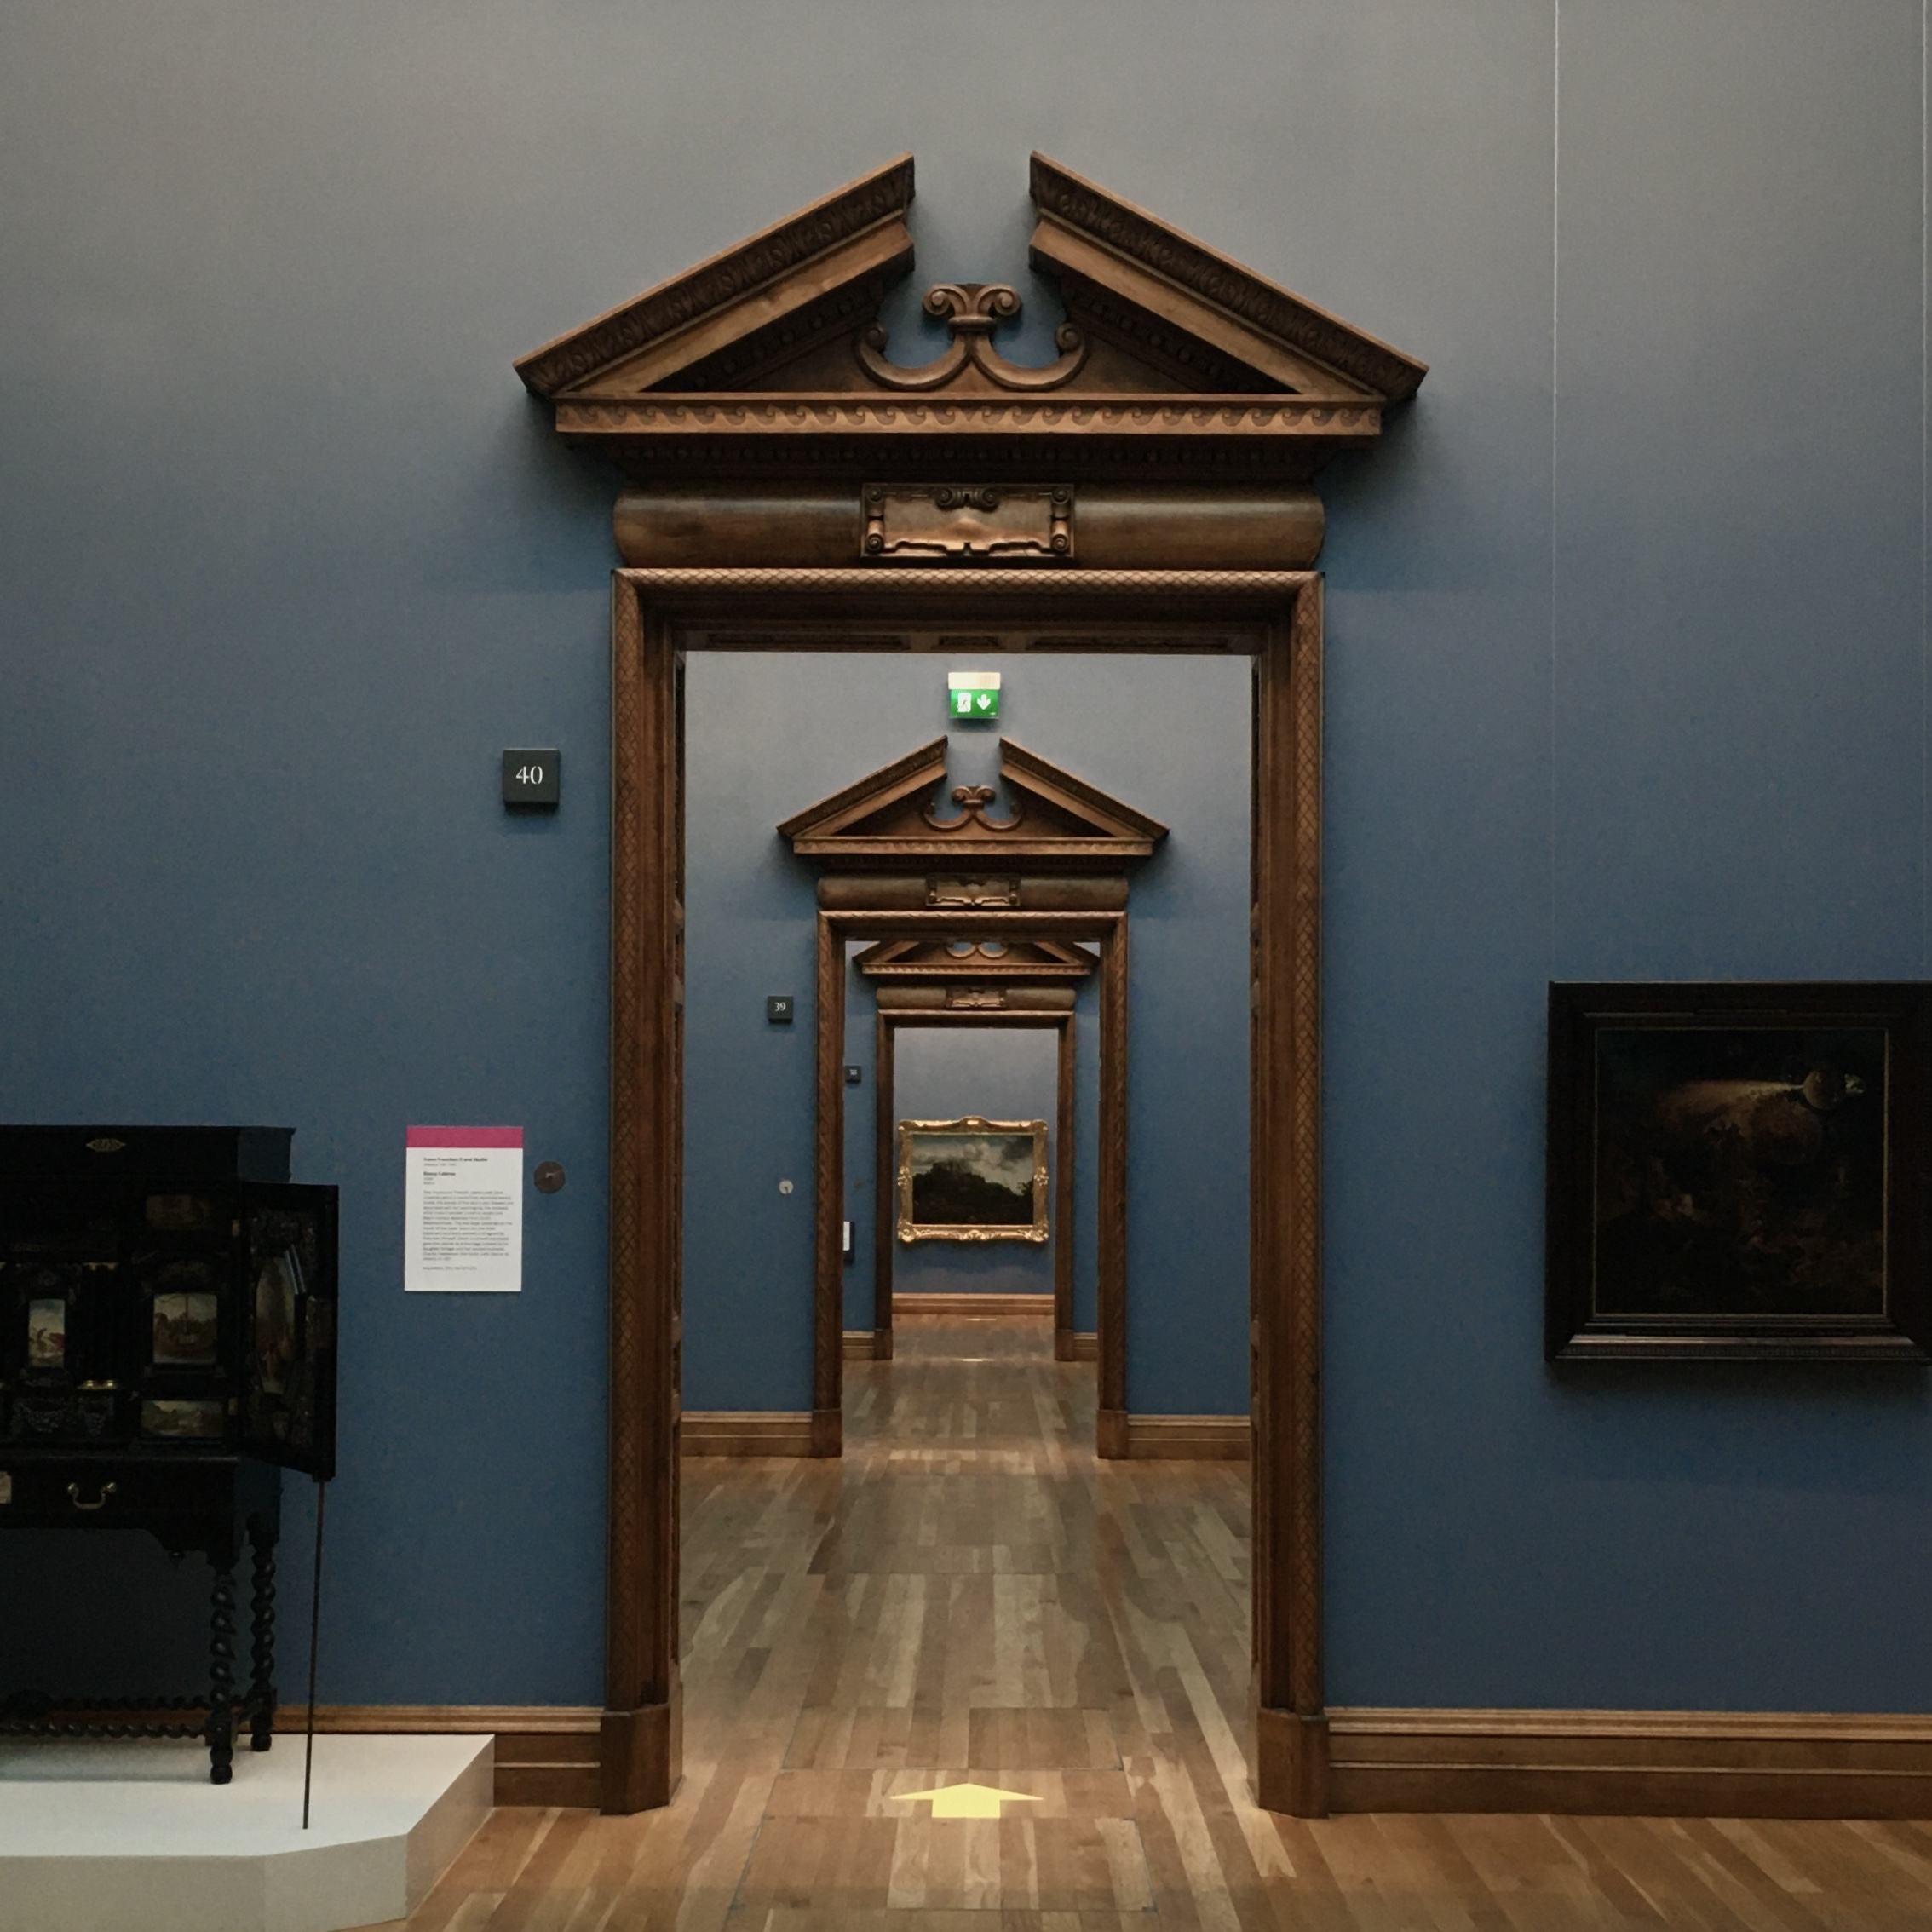 Concentric doorways in the National Gallery